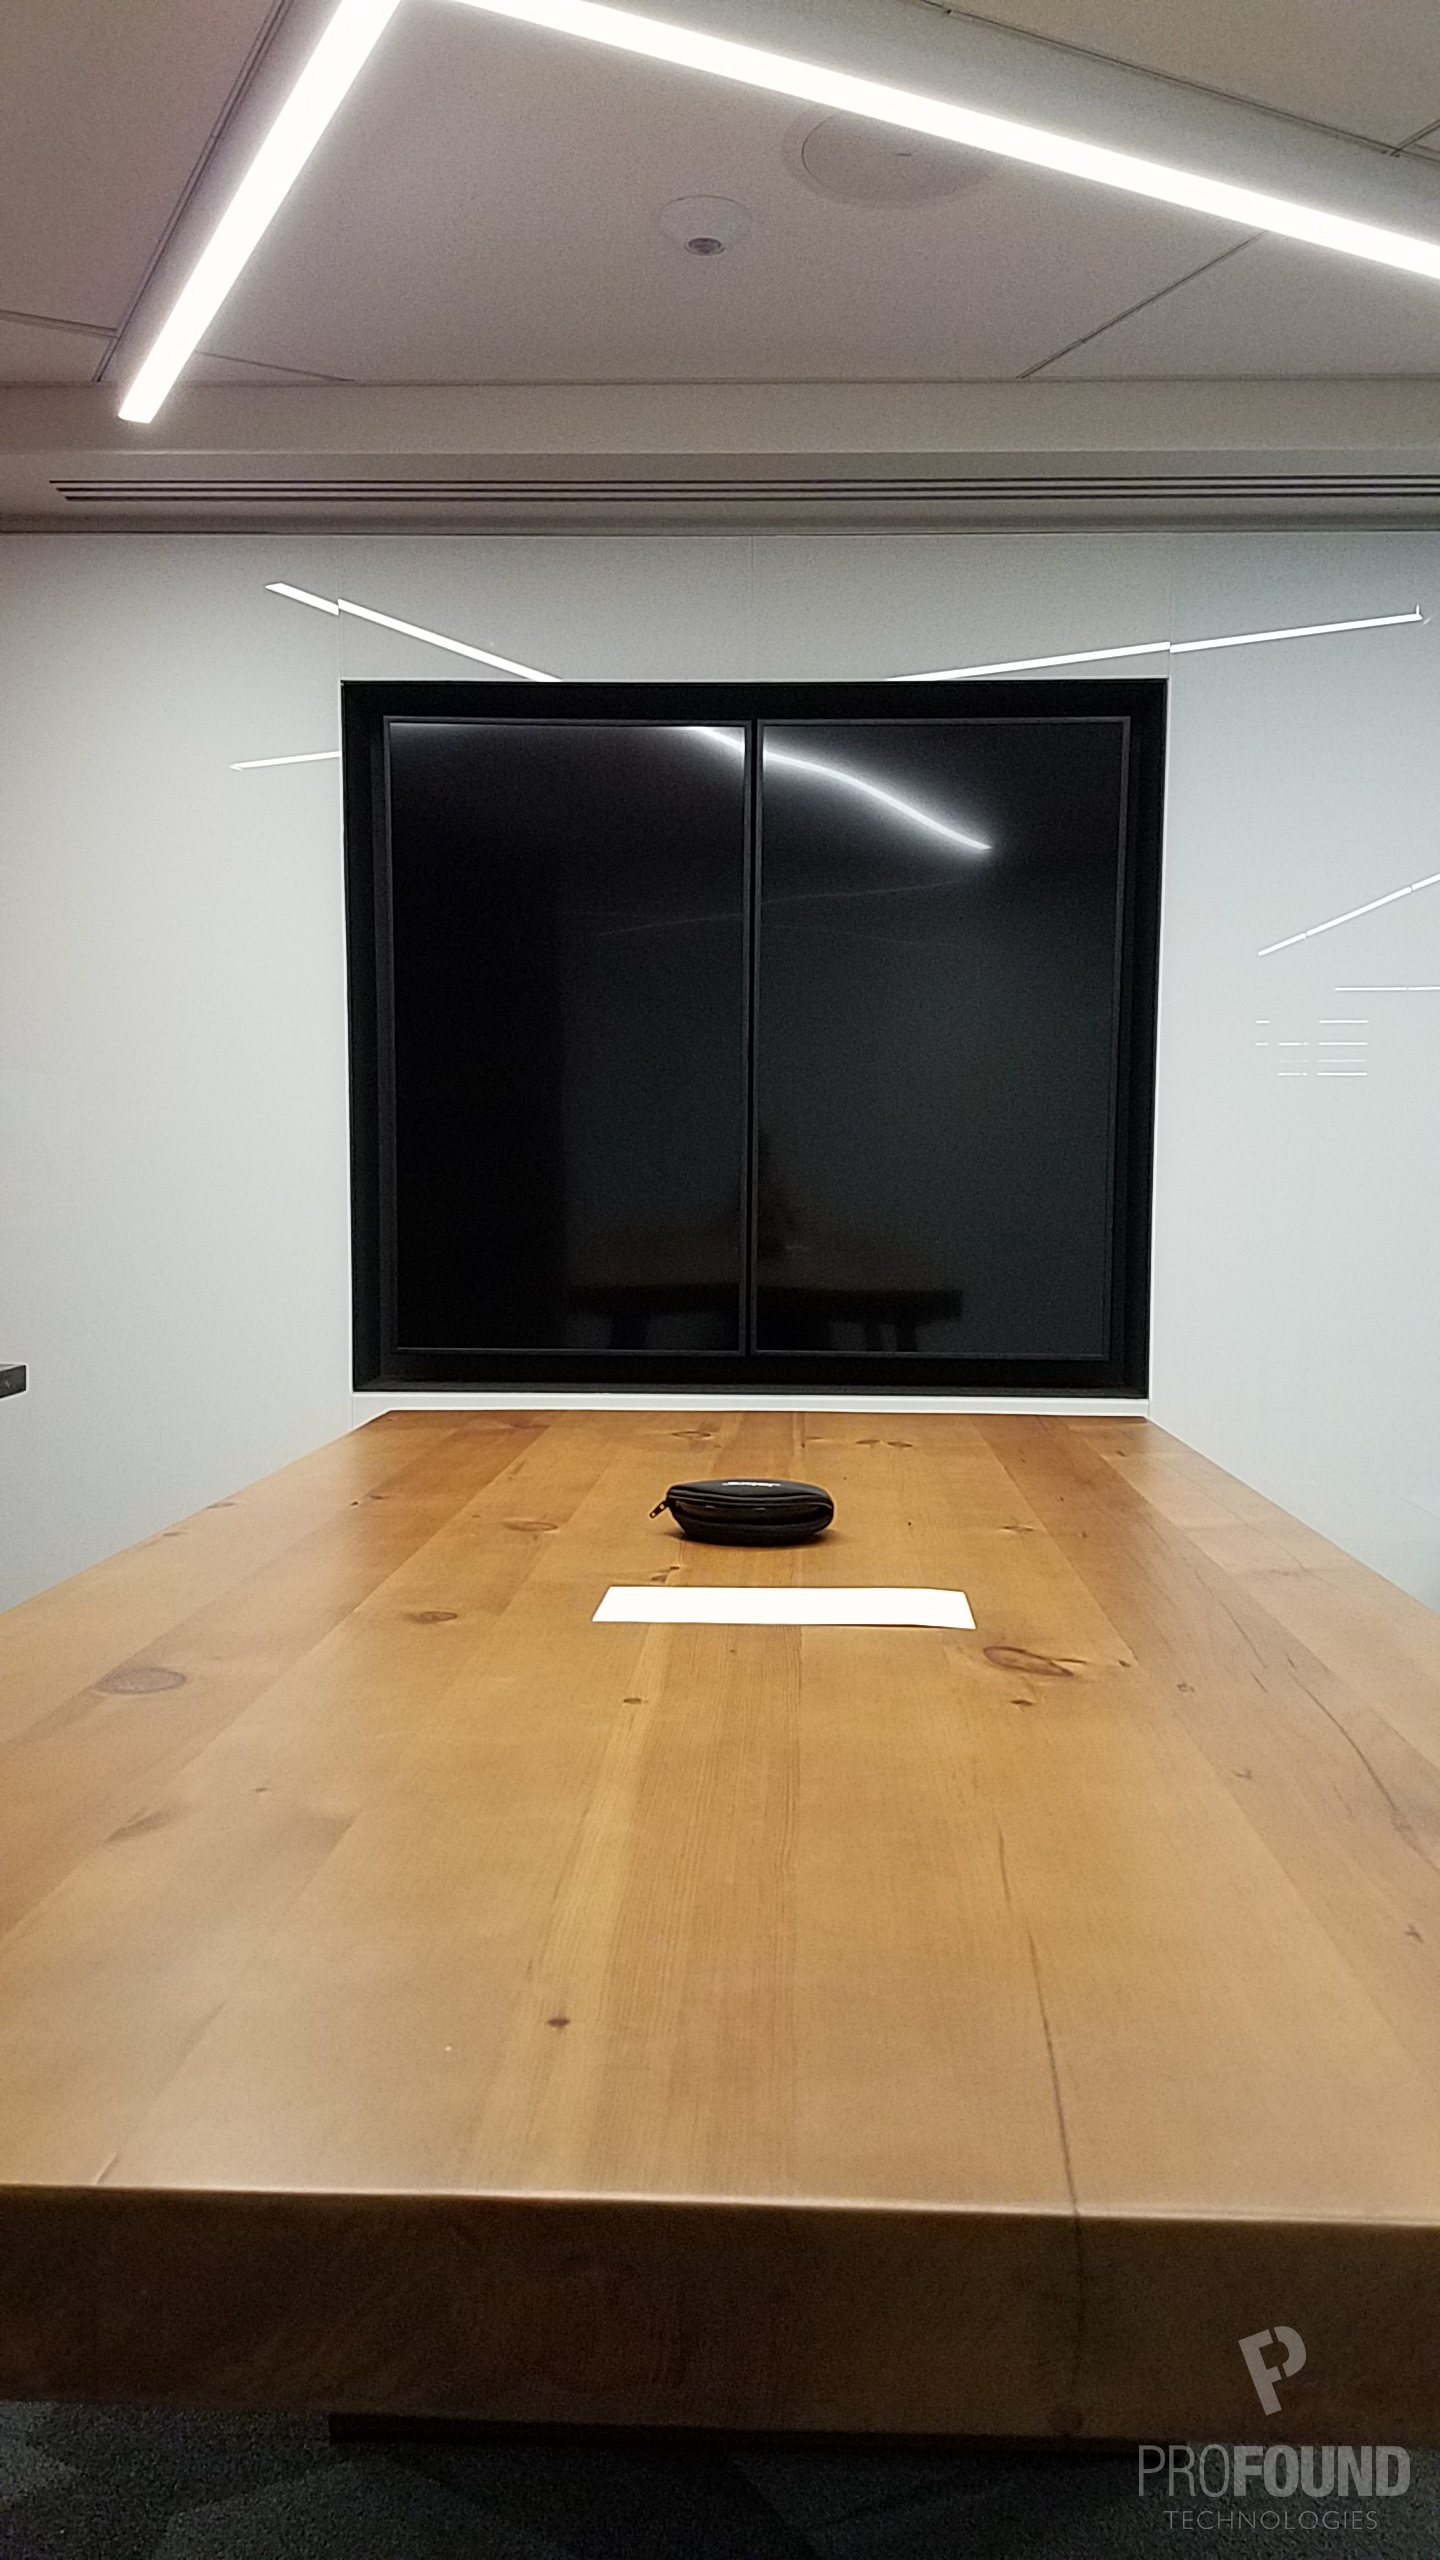 Commercial Single Display in Conference Room with Tabletop Mic